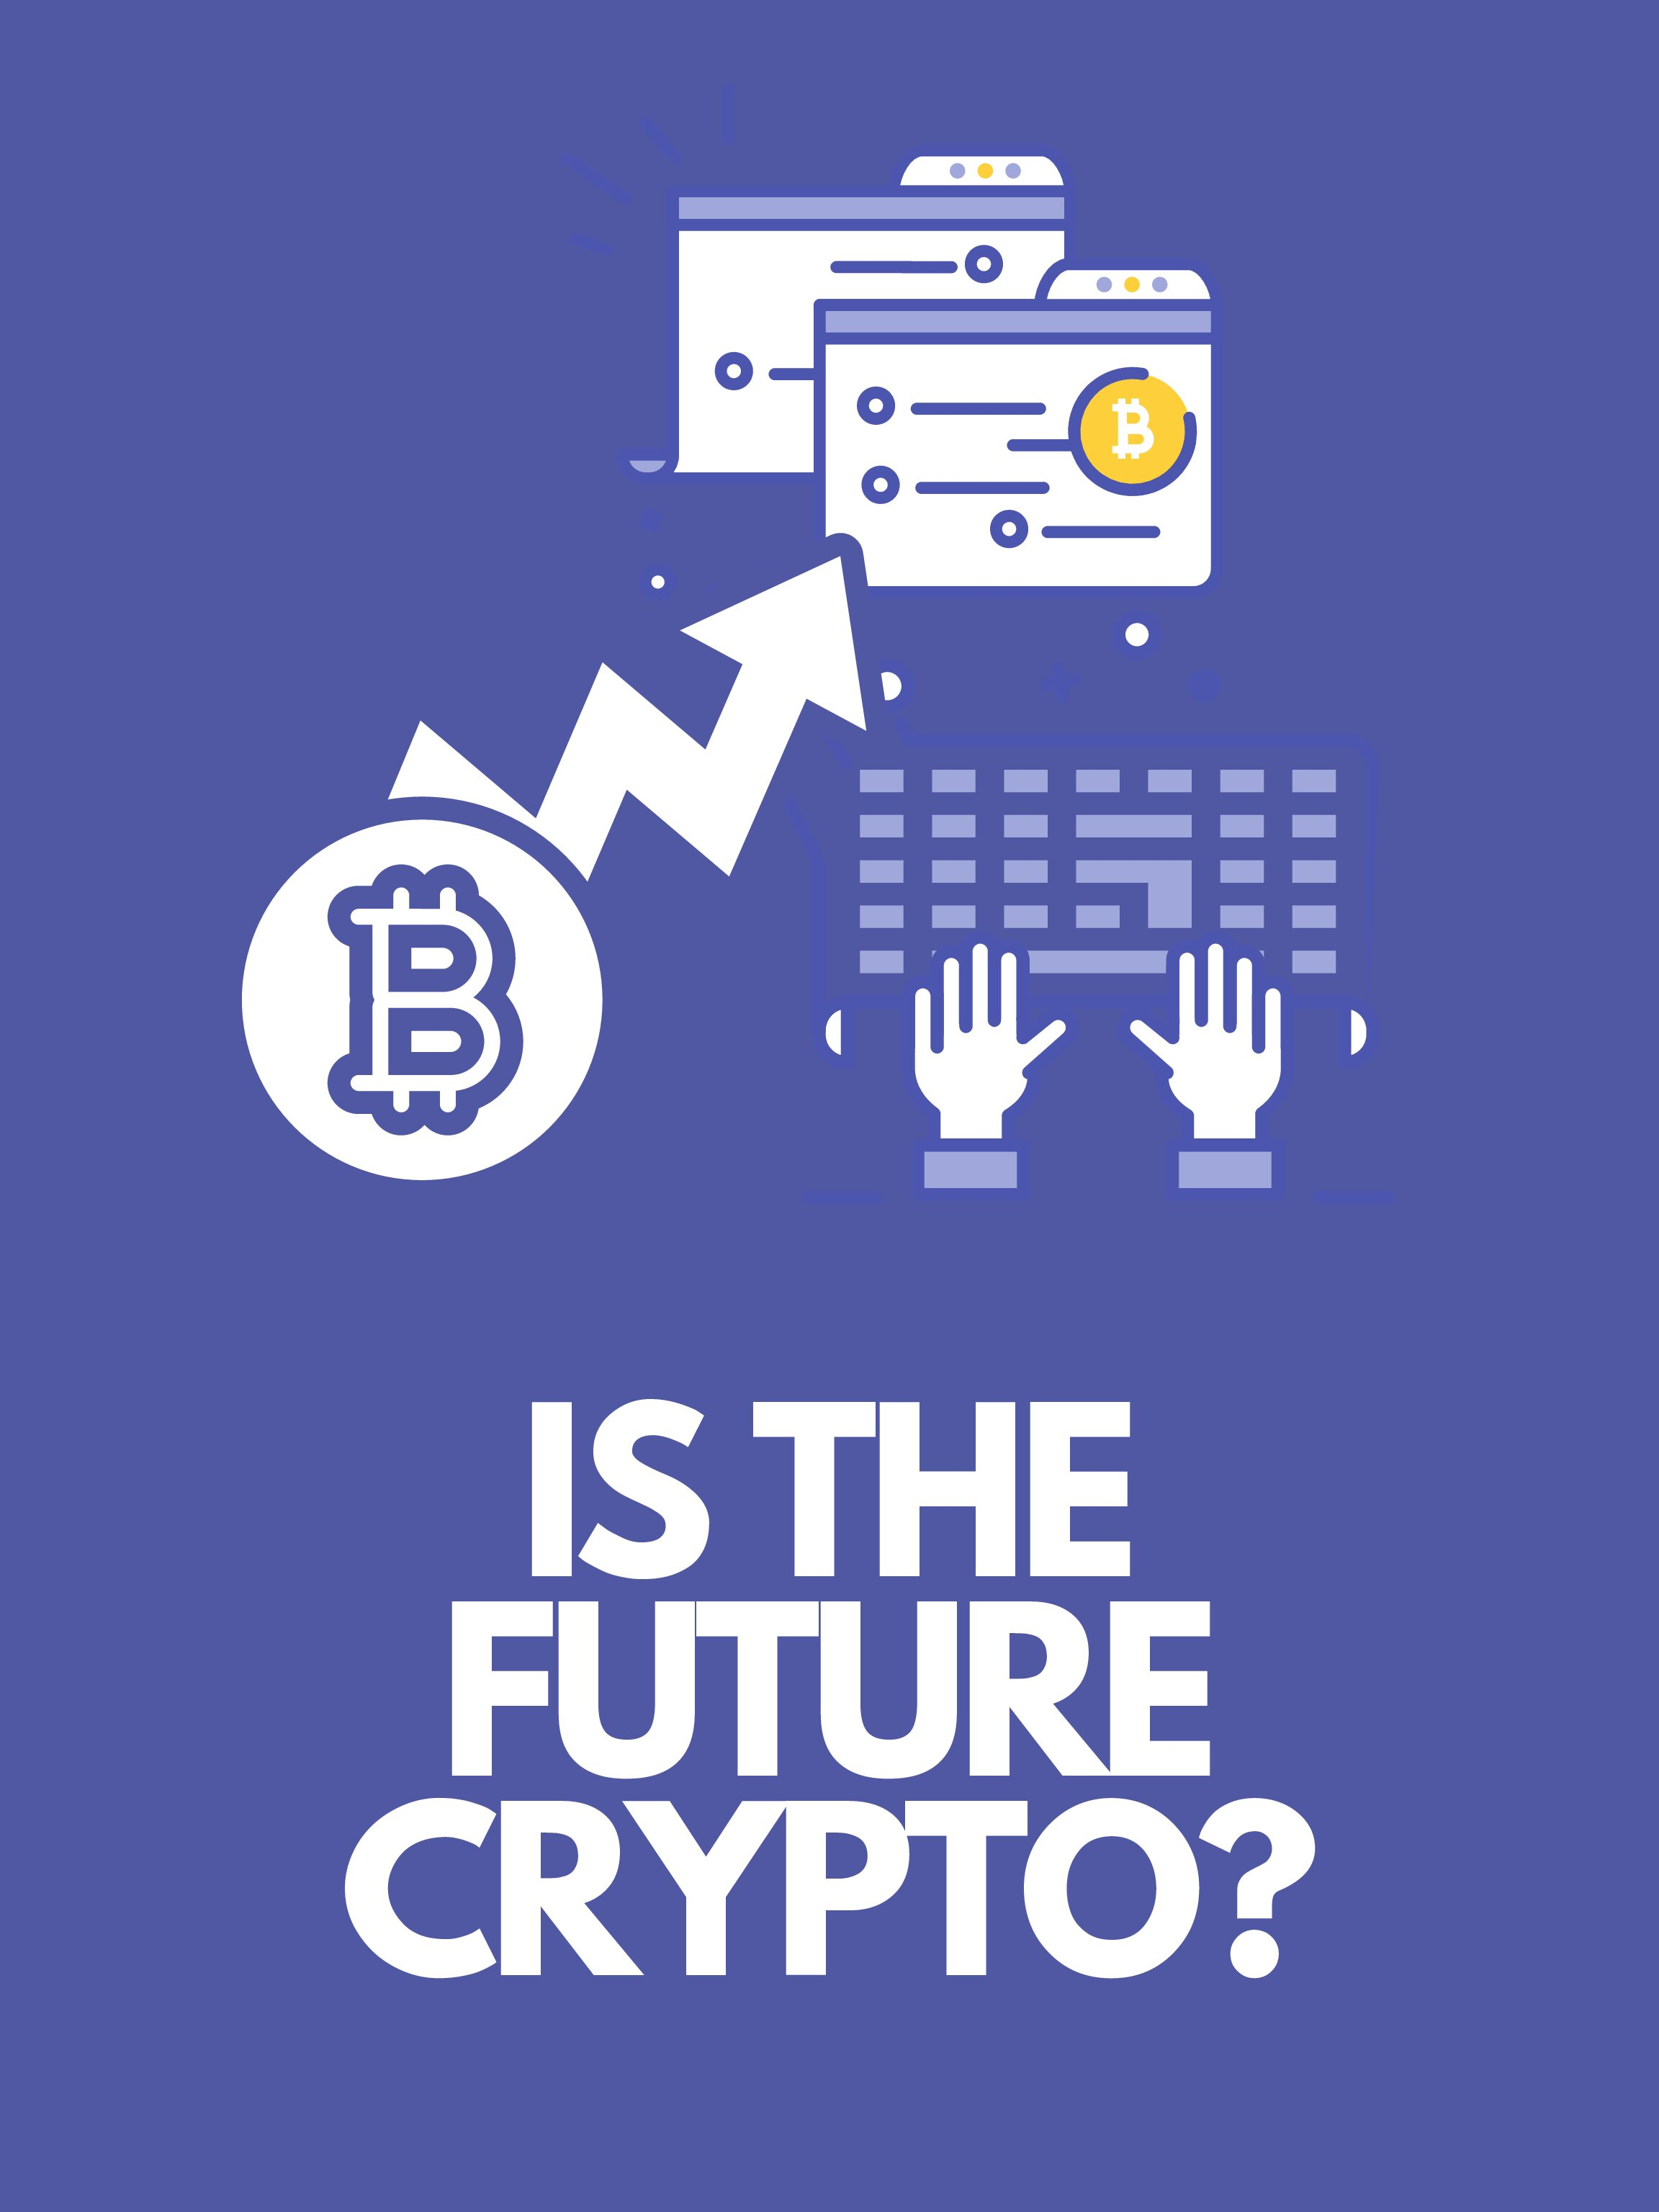 The cryptocurrency market has been booming - so what is it really? Graphic by K. Peechu.